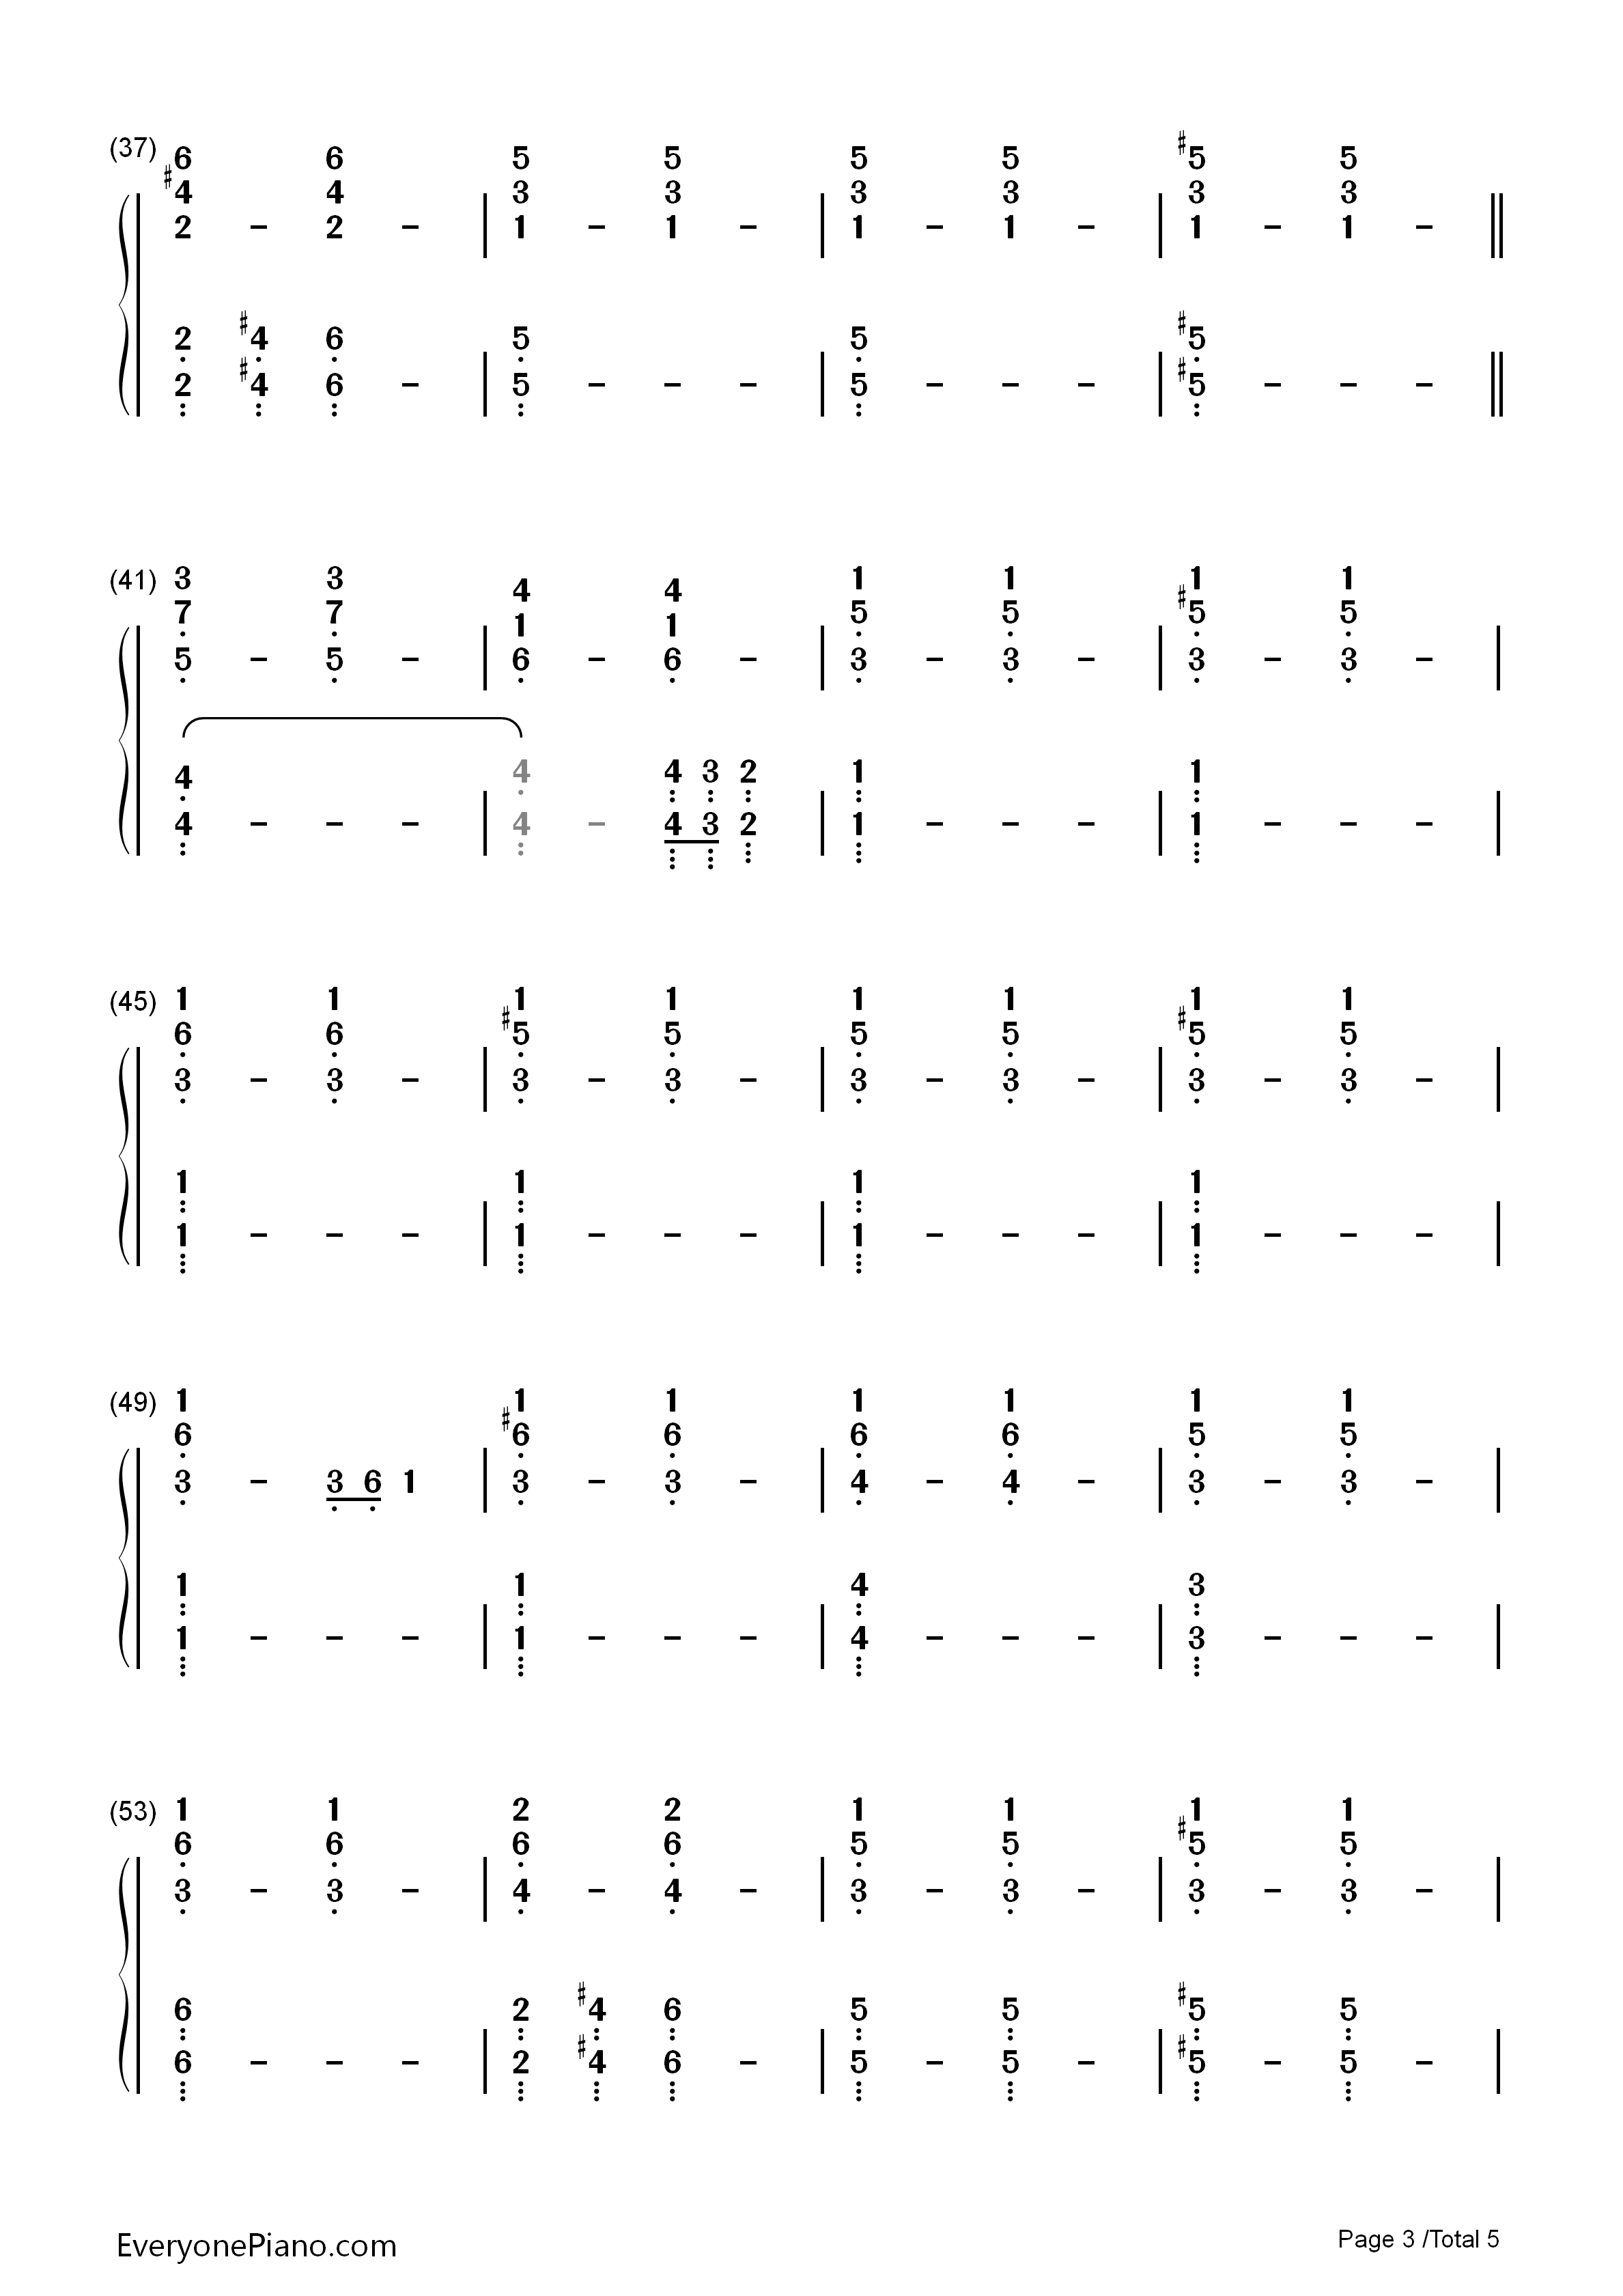 Impossible year panic at the disco numbered musical notation listen now print sheet impossible year panic at the disco numbered musical notation preview 3 hexwebz Images